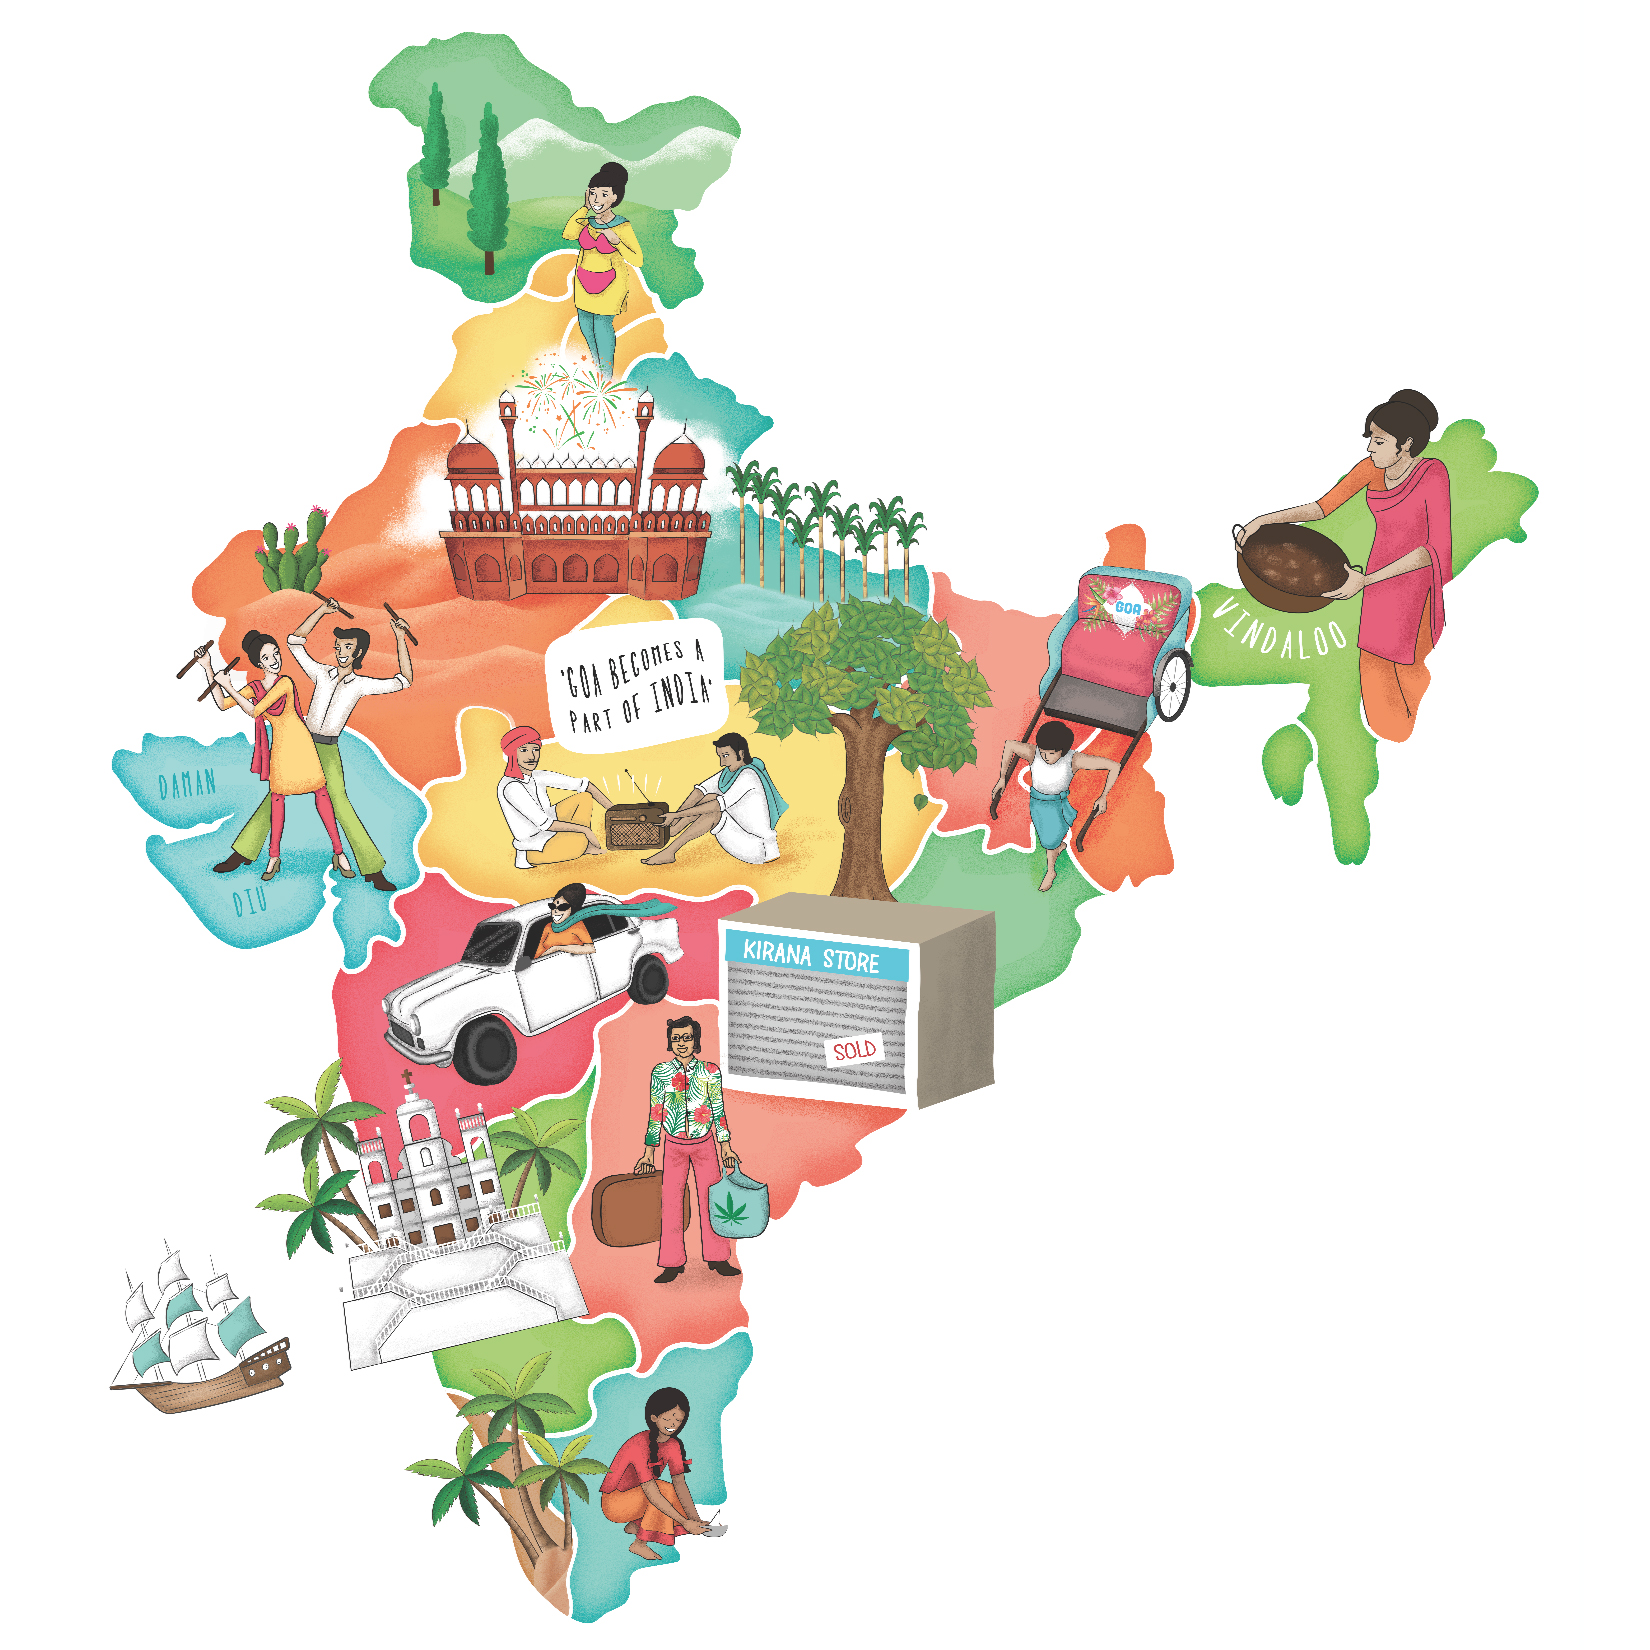 """1961 : """"1961 is the year that Goa became a part of India. For most of us Goa has been a right to passage, to being or at least feeling like an adult. A map of India where people all over are rejoicing the inclusion of Goa. Somewhere in Punjab a kirana store uncle has shut shop and packed his suitcases ready to visit Goa. College students take a bus from Bombay to Goa. Aunties buying knee length swimsuits in anticipation of Goa becoming there next holiday. A couple decides to finally get married now that they have a honey moon destination. For year 1961, the theme is independence of Goa."""" ~ Gargi Chandola"""